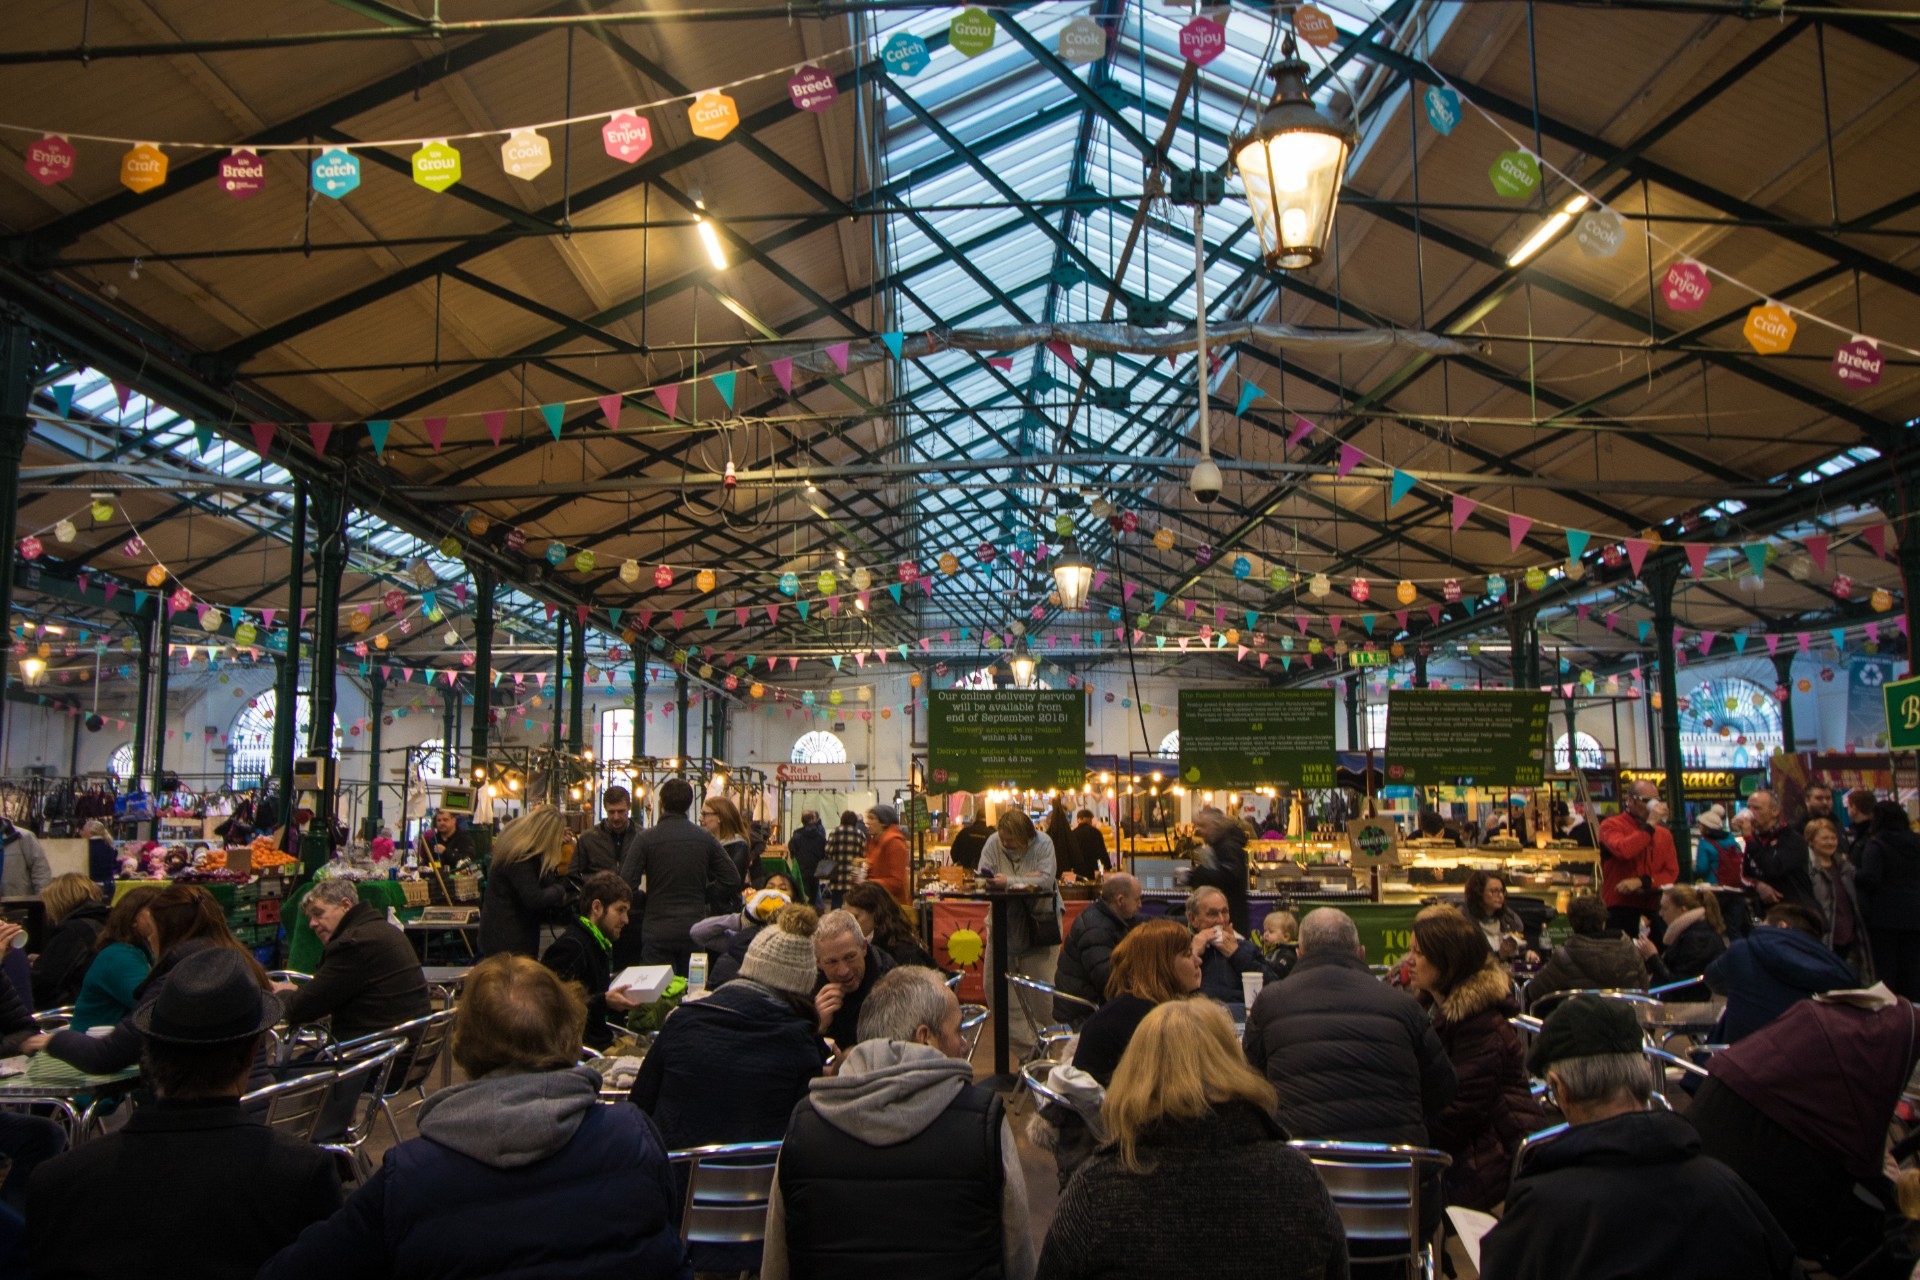 st-georges-market-hall-with-bunting-on-the-ceiling-filled-with-lots-of-people-eating-breakfast